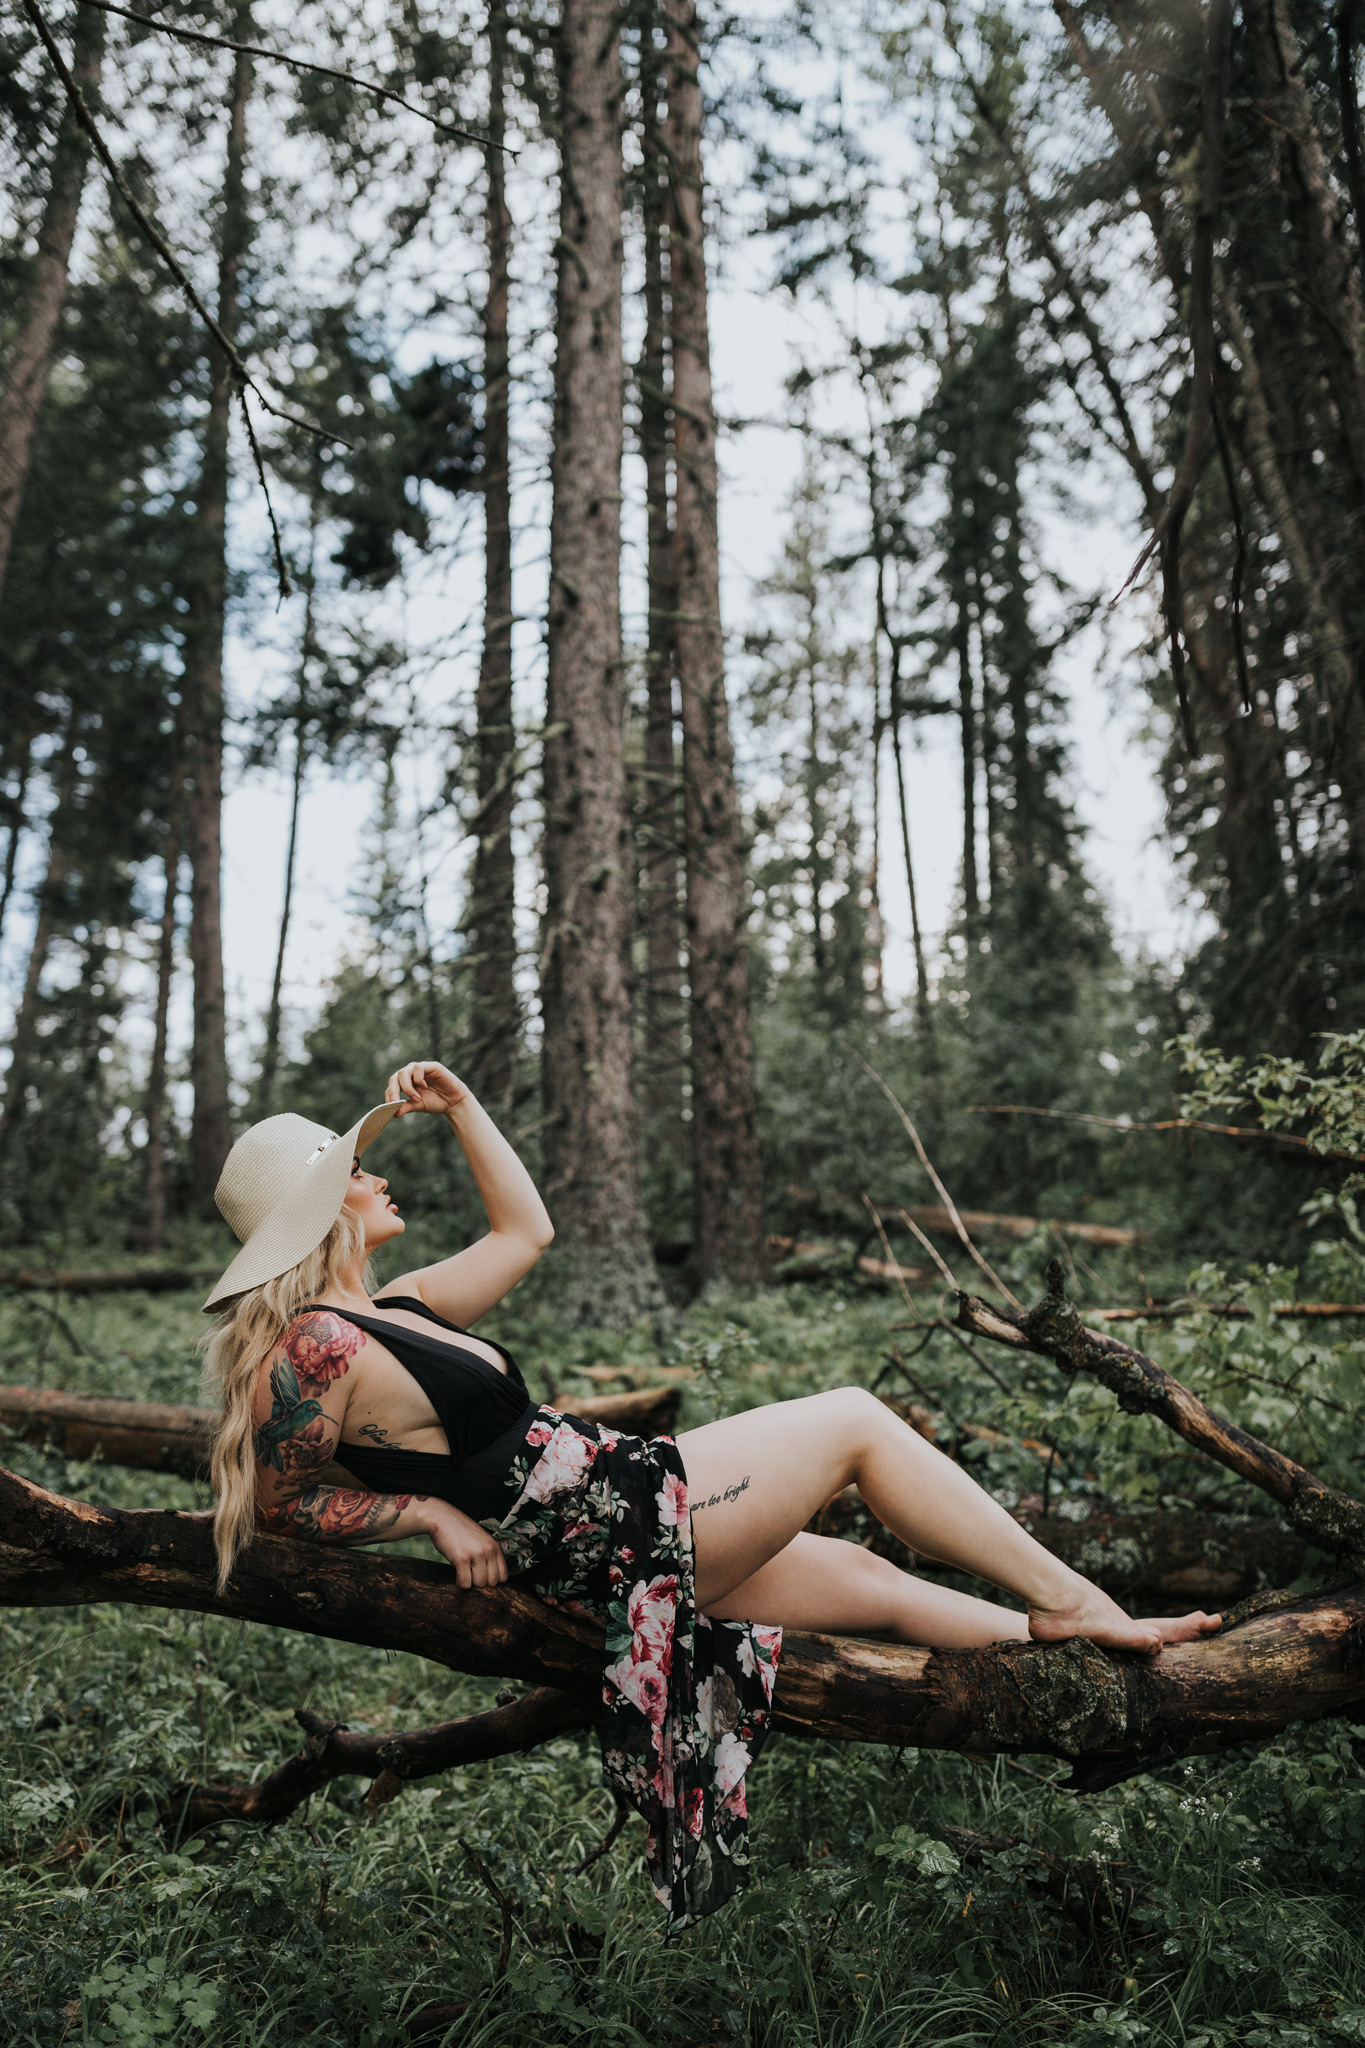 woman lounging on suspended tree log in forest wearing floppy hat